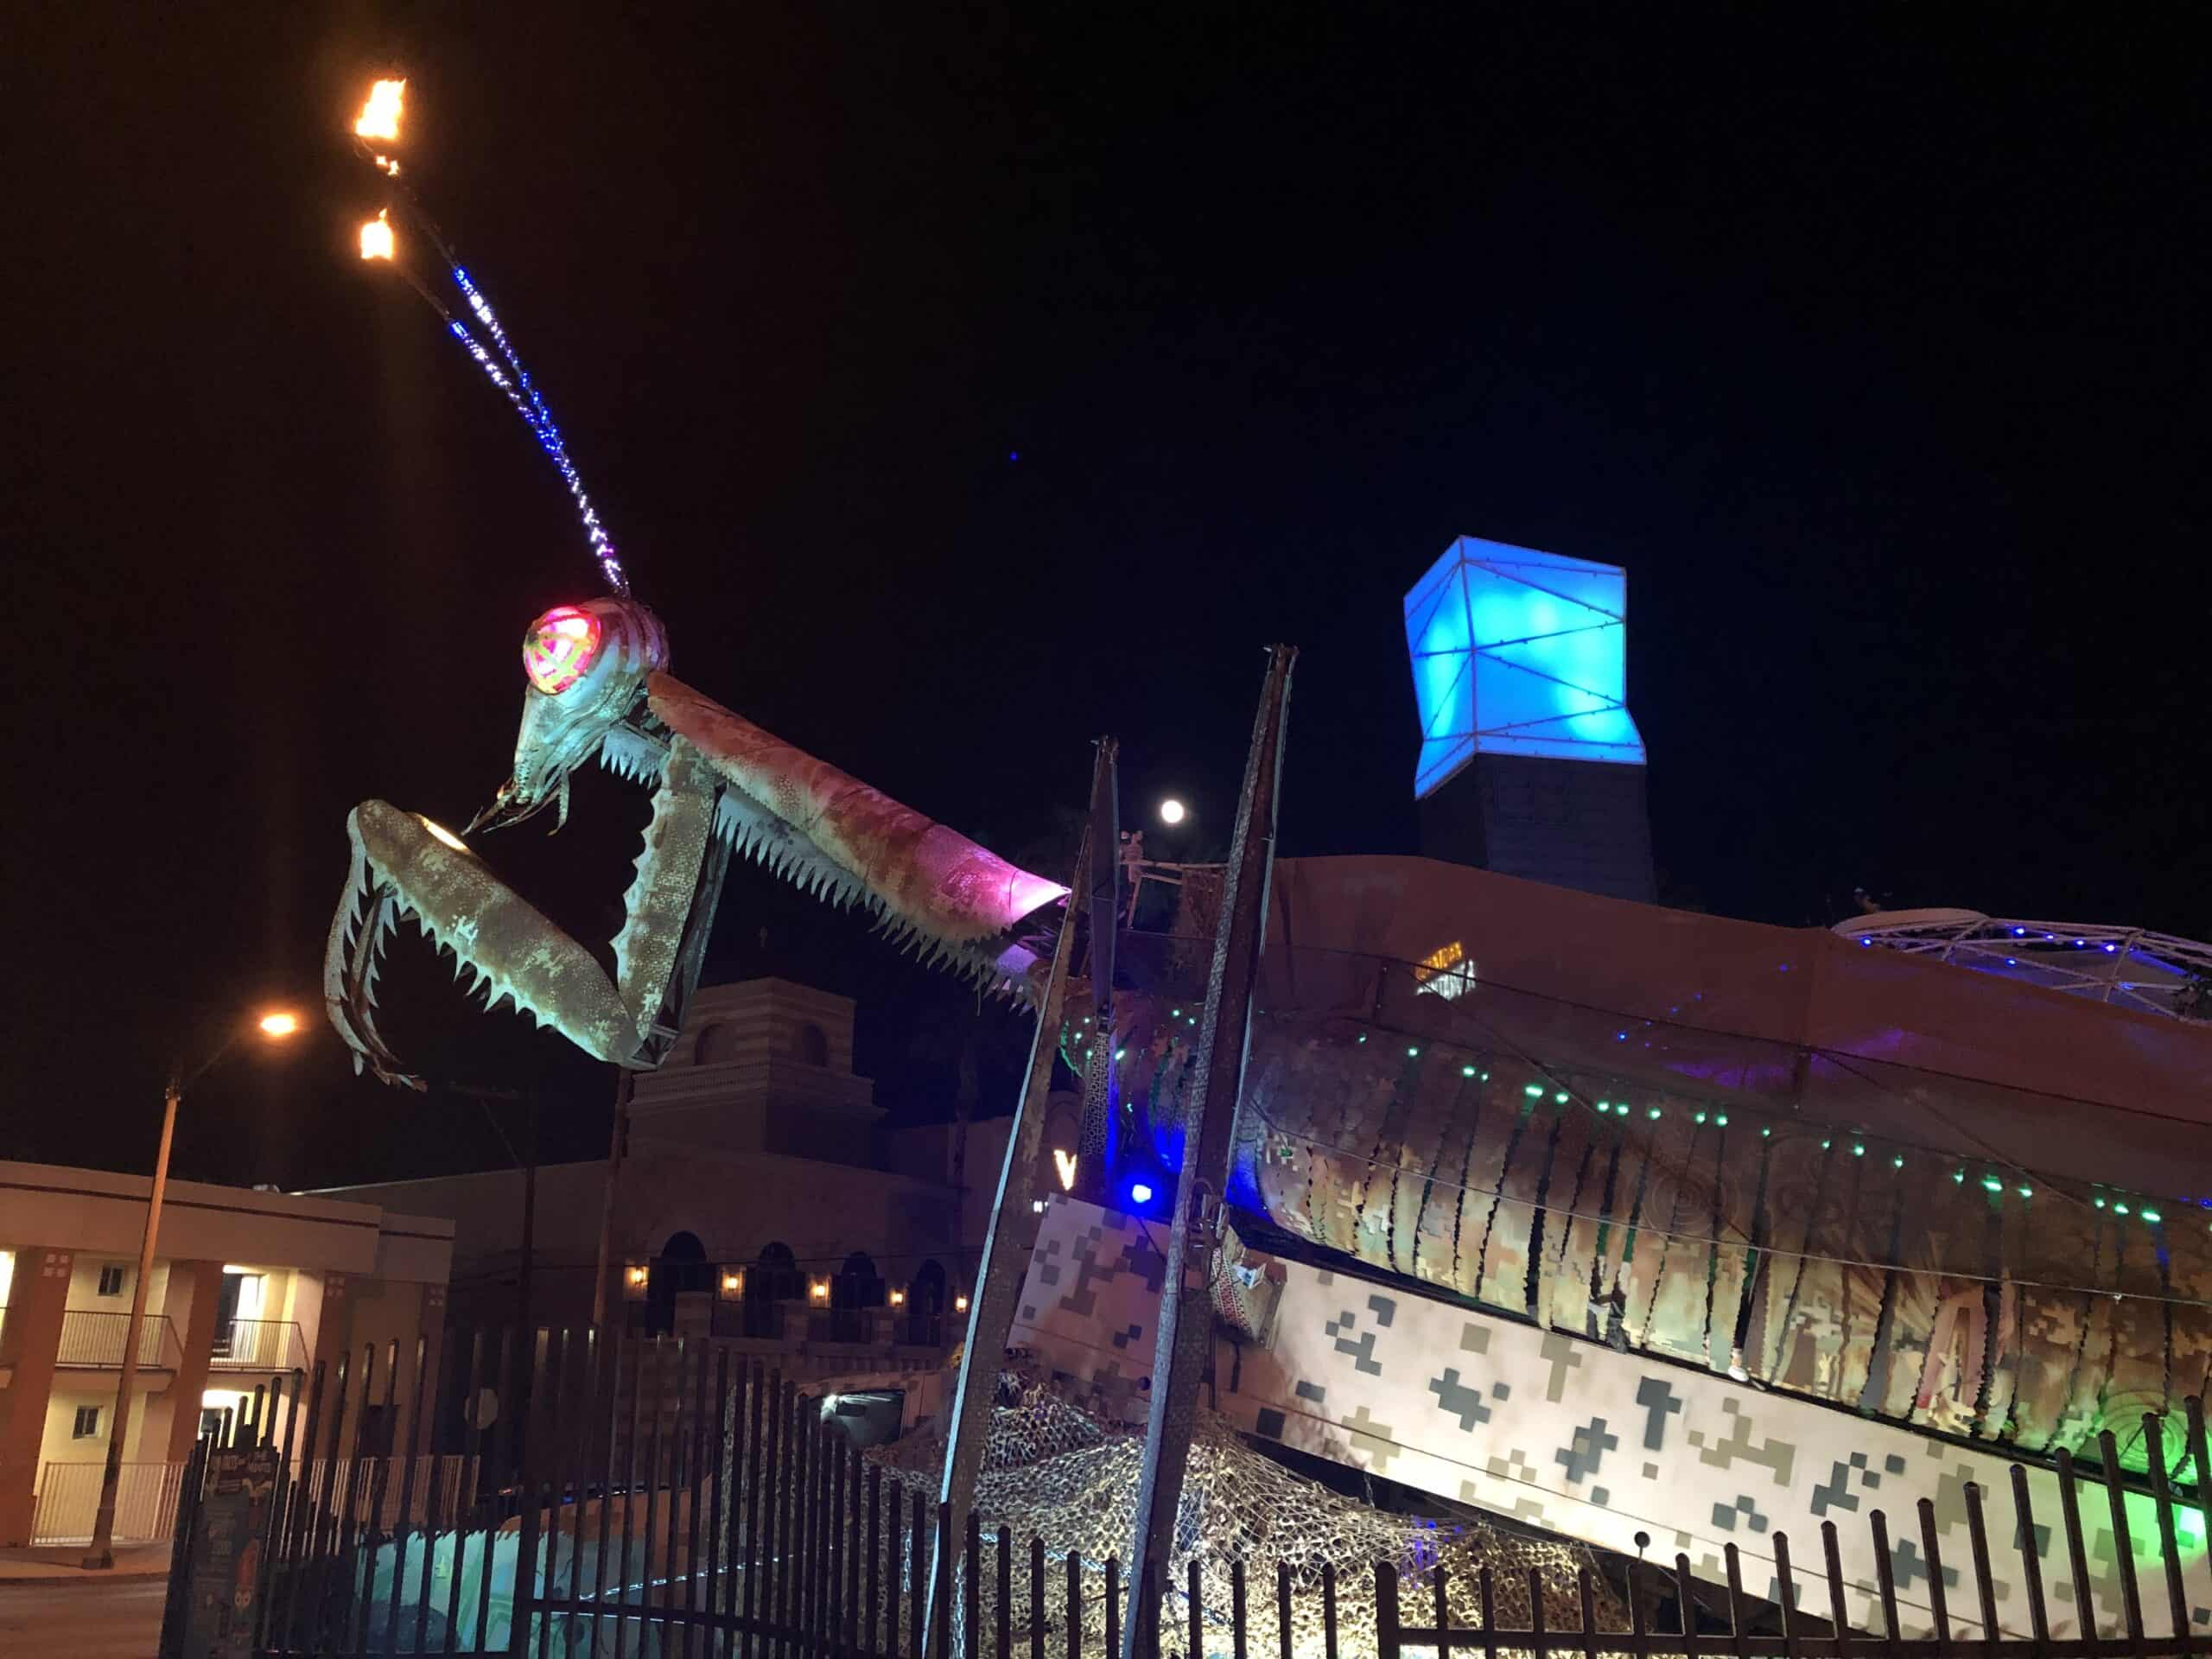 Downtown Container Park's Praying Mantis with fire coming out of its antennae